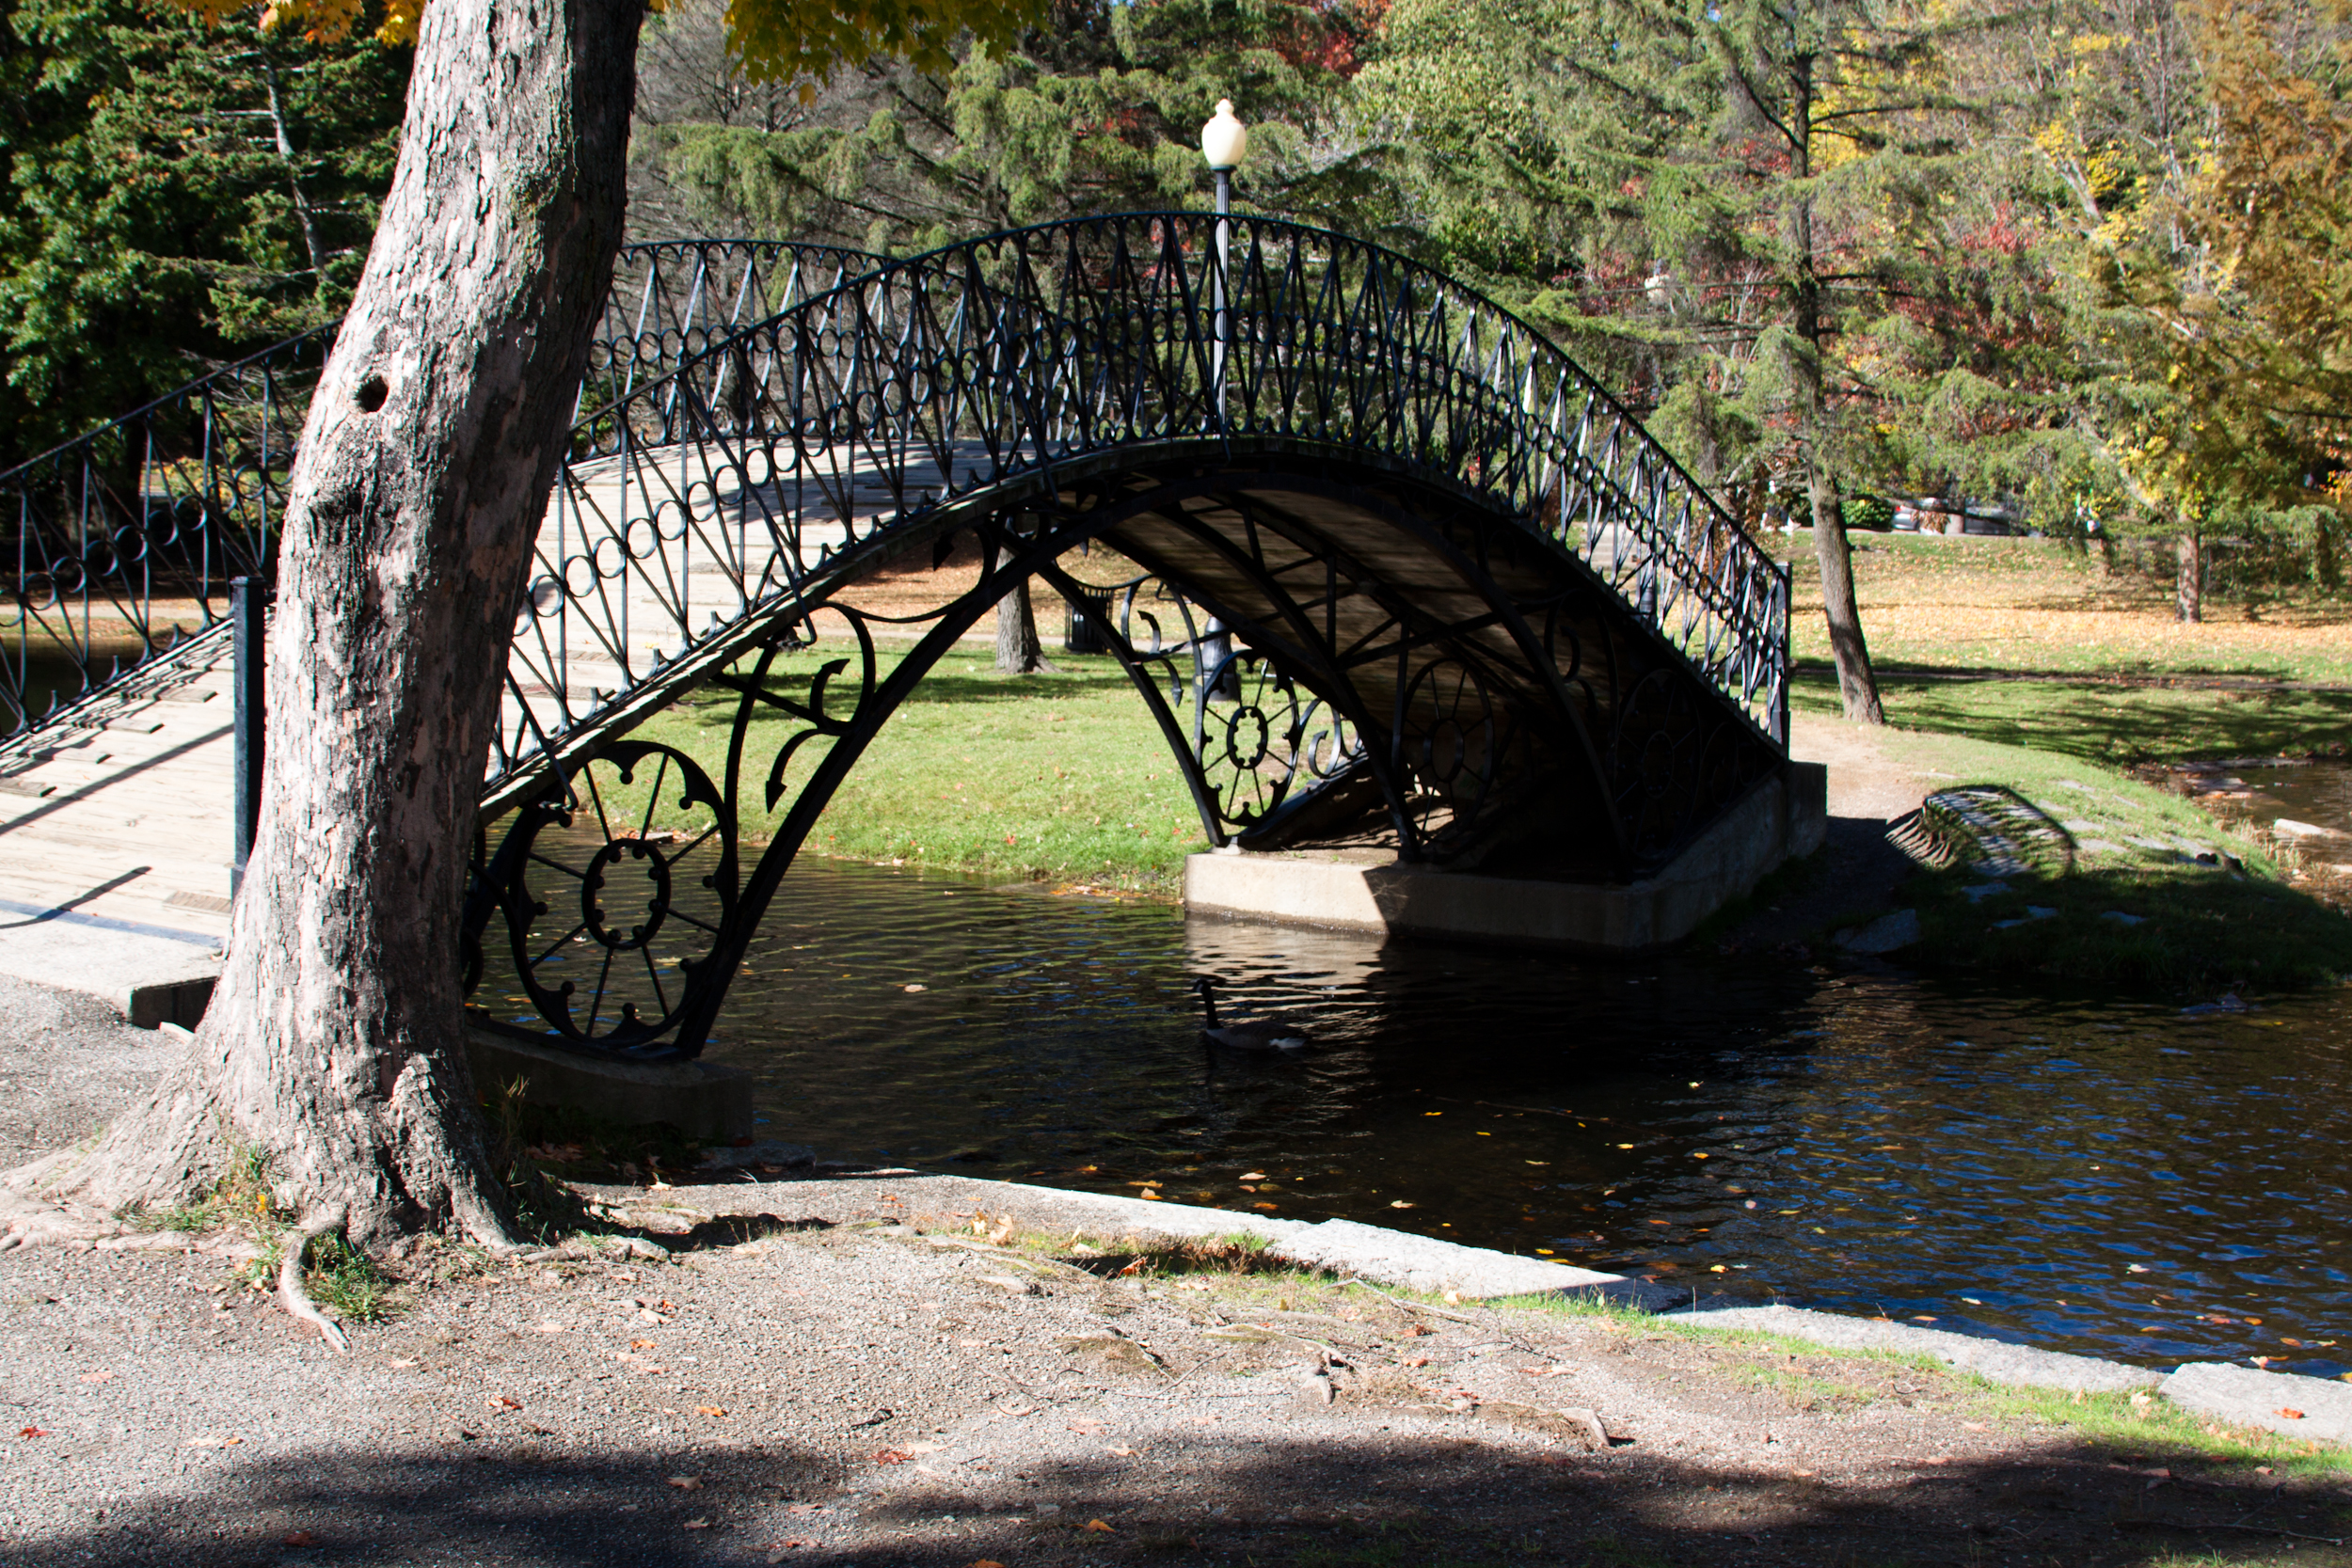 http://s3.amazonaws.com/placester-wordpress/blogs.dir/7398/files/2014/02/Worcester_Massachusetts_Elm_Park_Iron_Bridge-190600.jpg